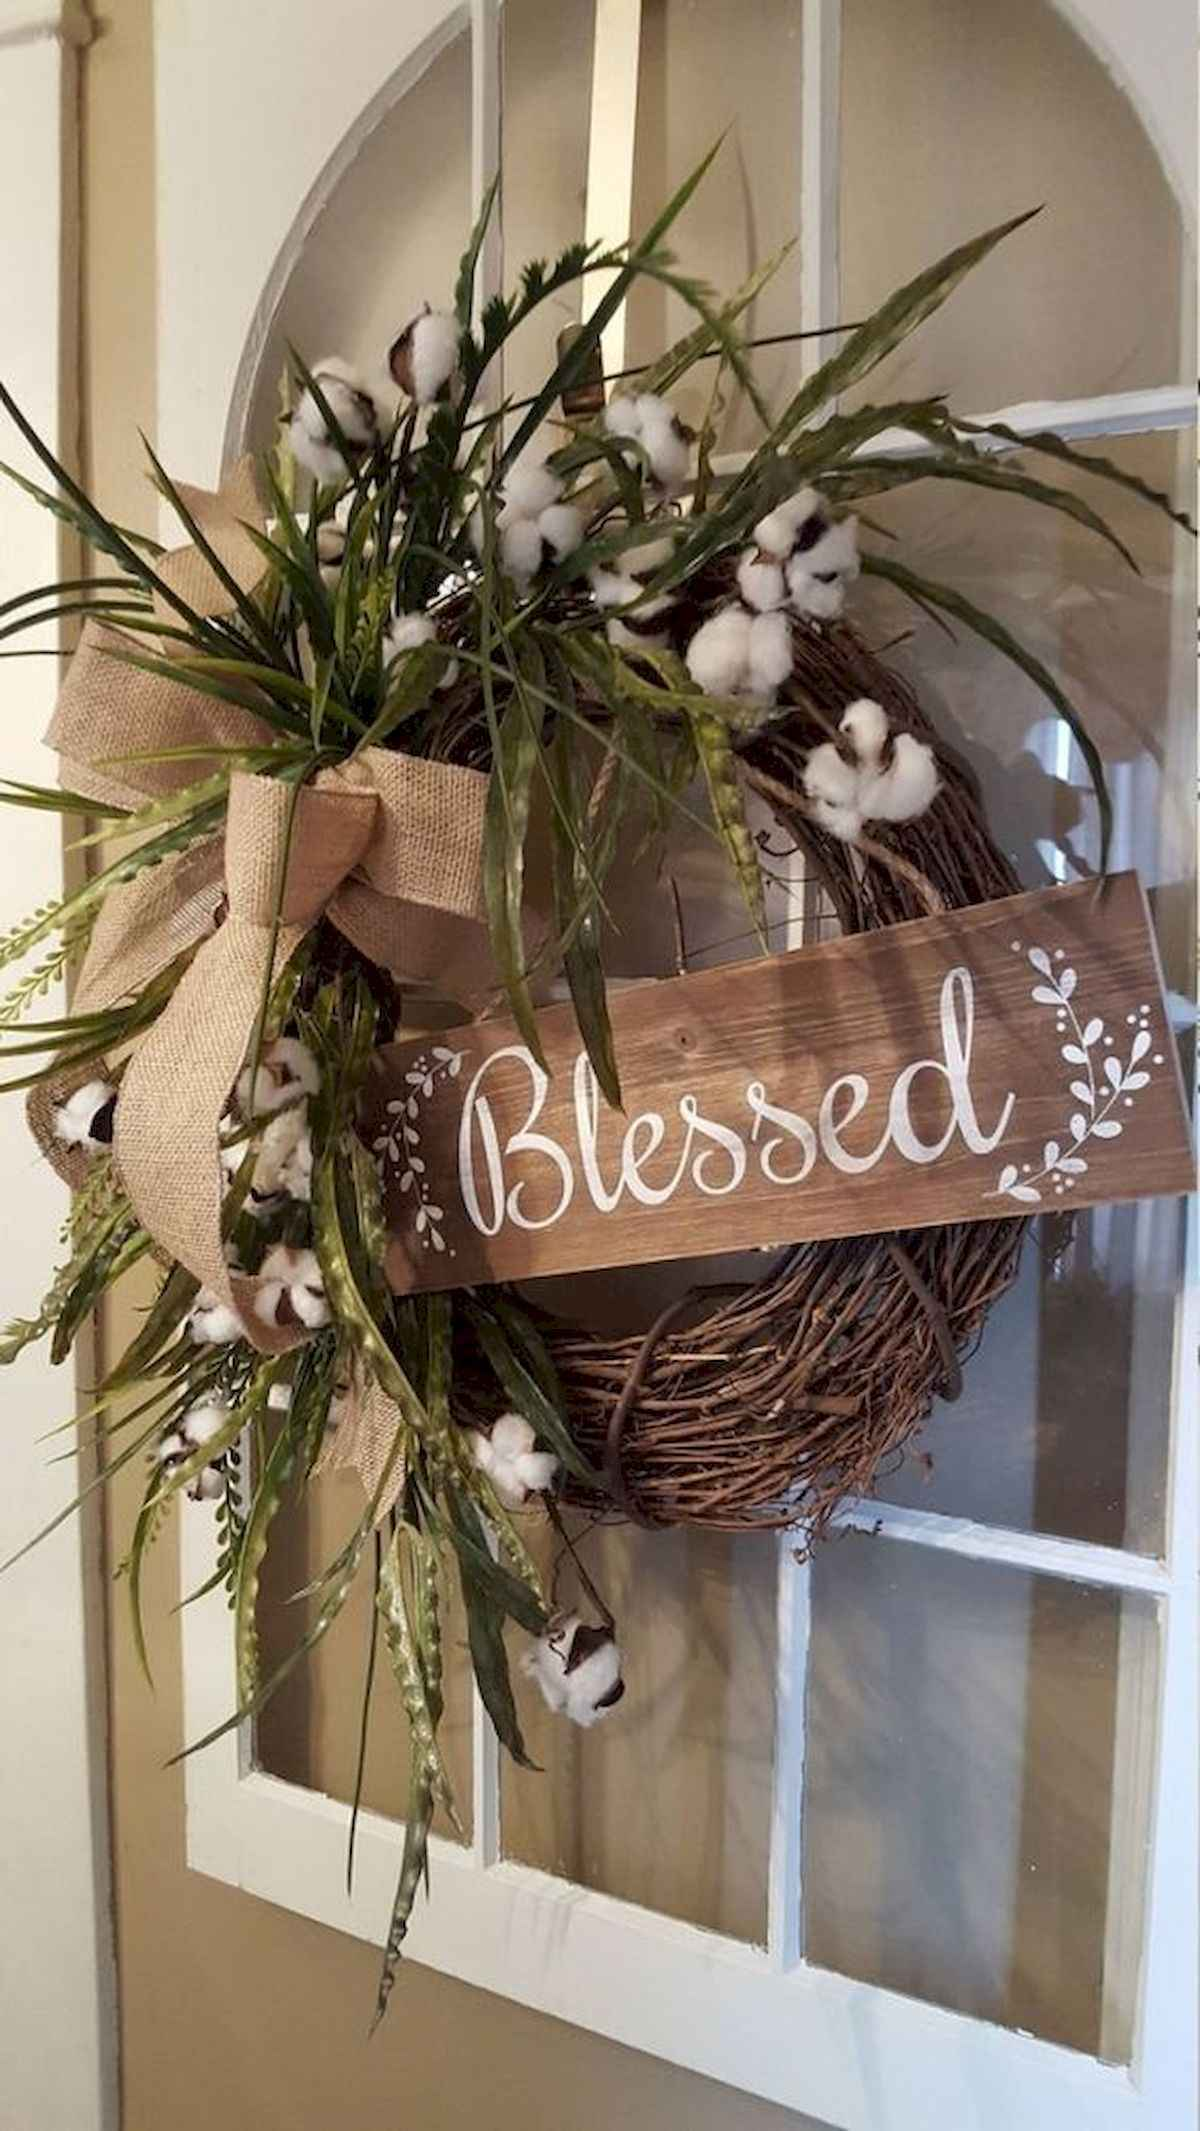 60 awesome wall art christmas ideas decorations (1)